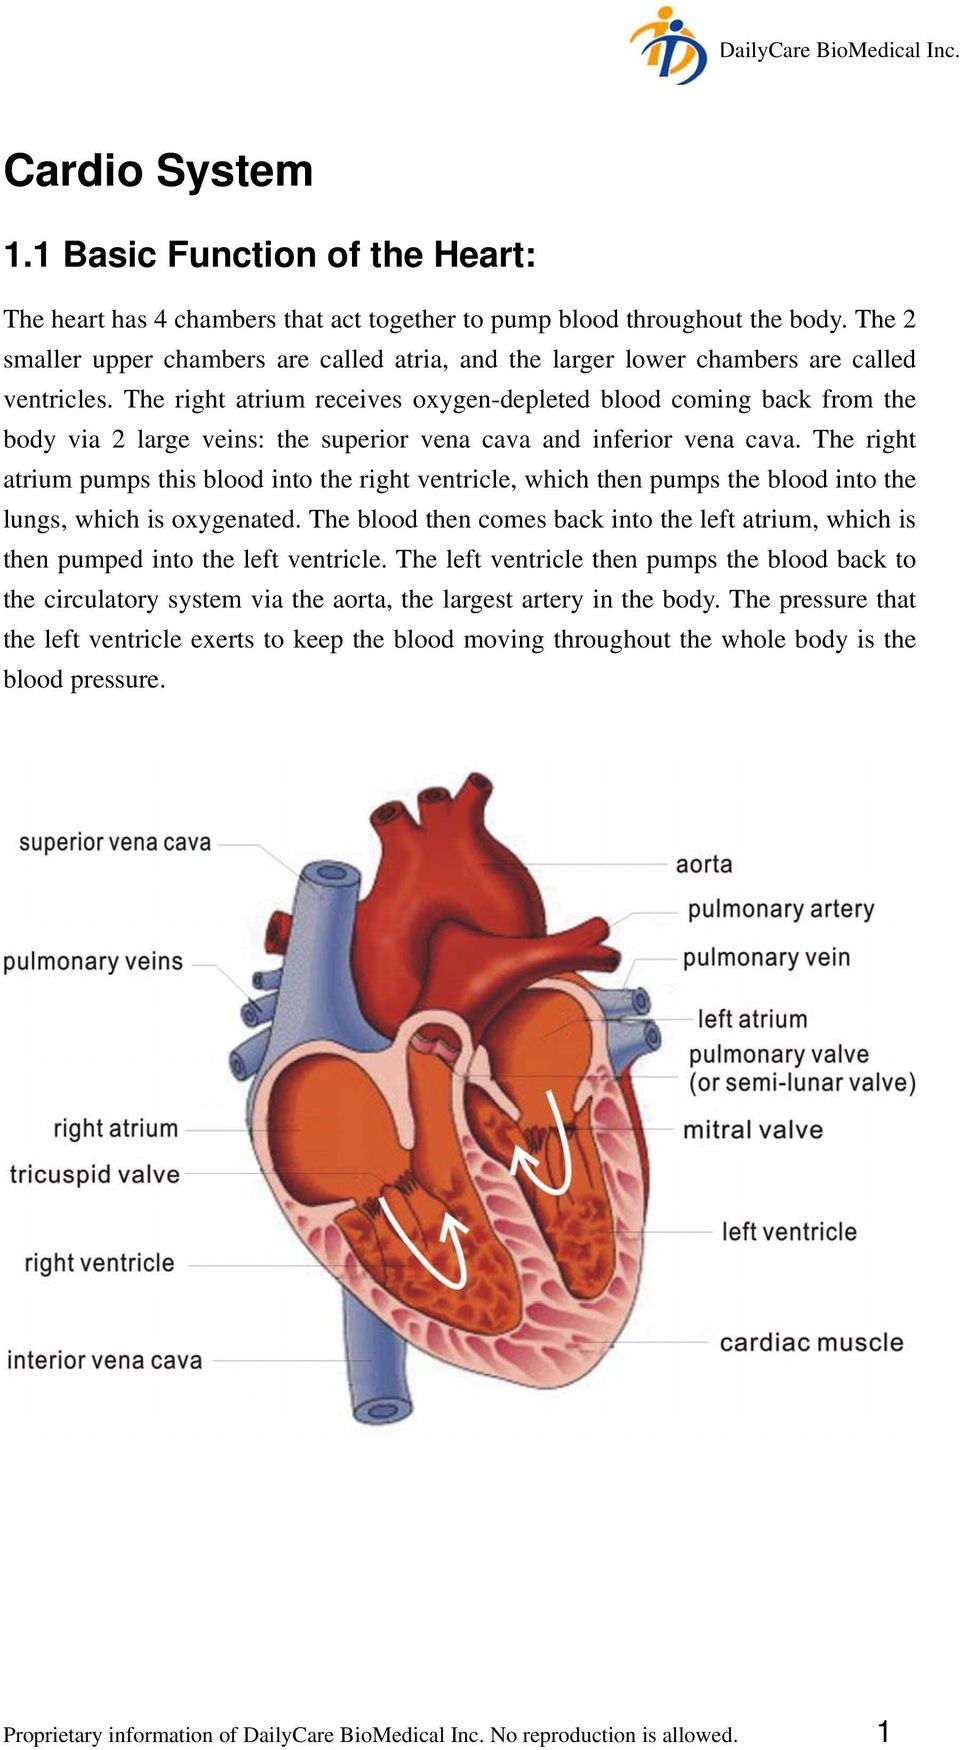 The right atrium receives oxygen-depleted blood coming back from the body via 2 large veins: the superior vena cava and inferior vena cava.